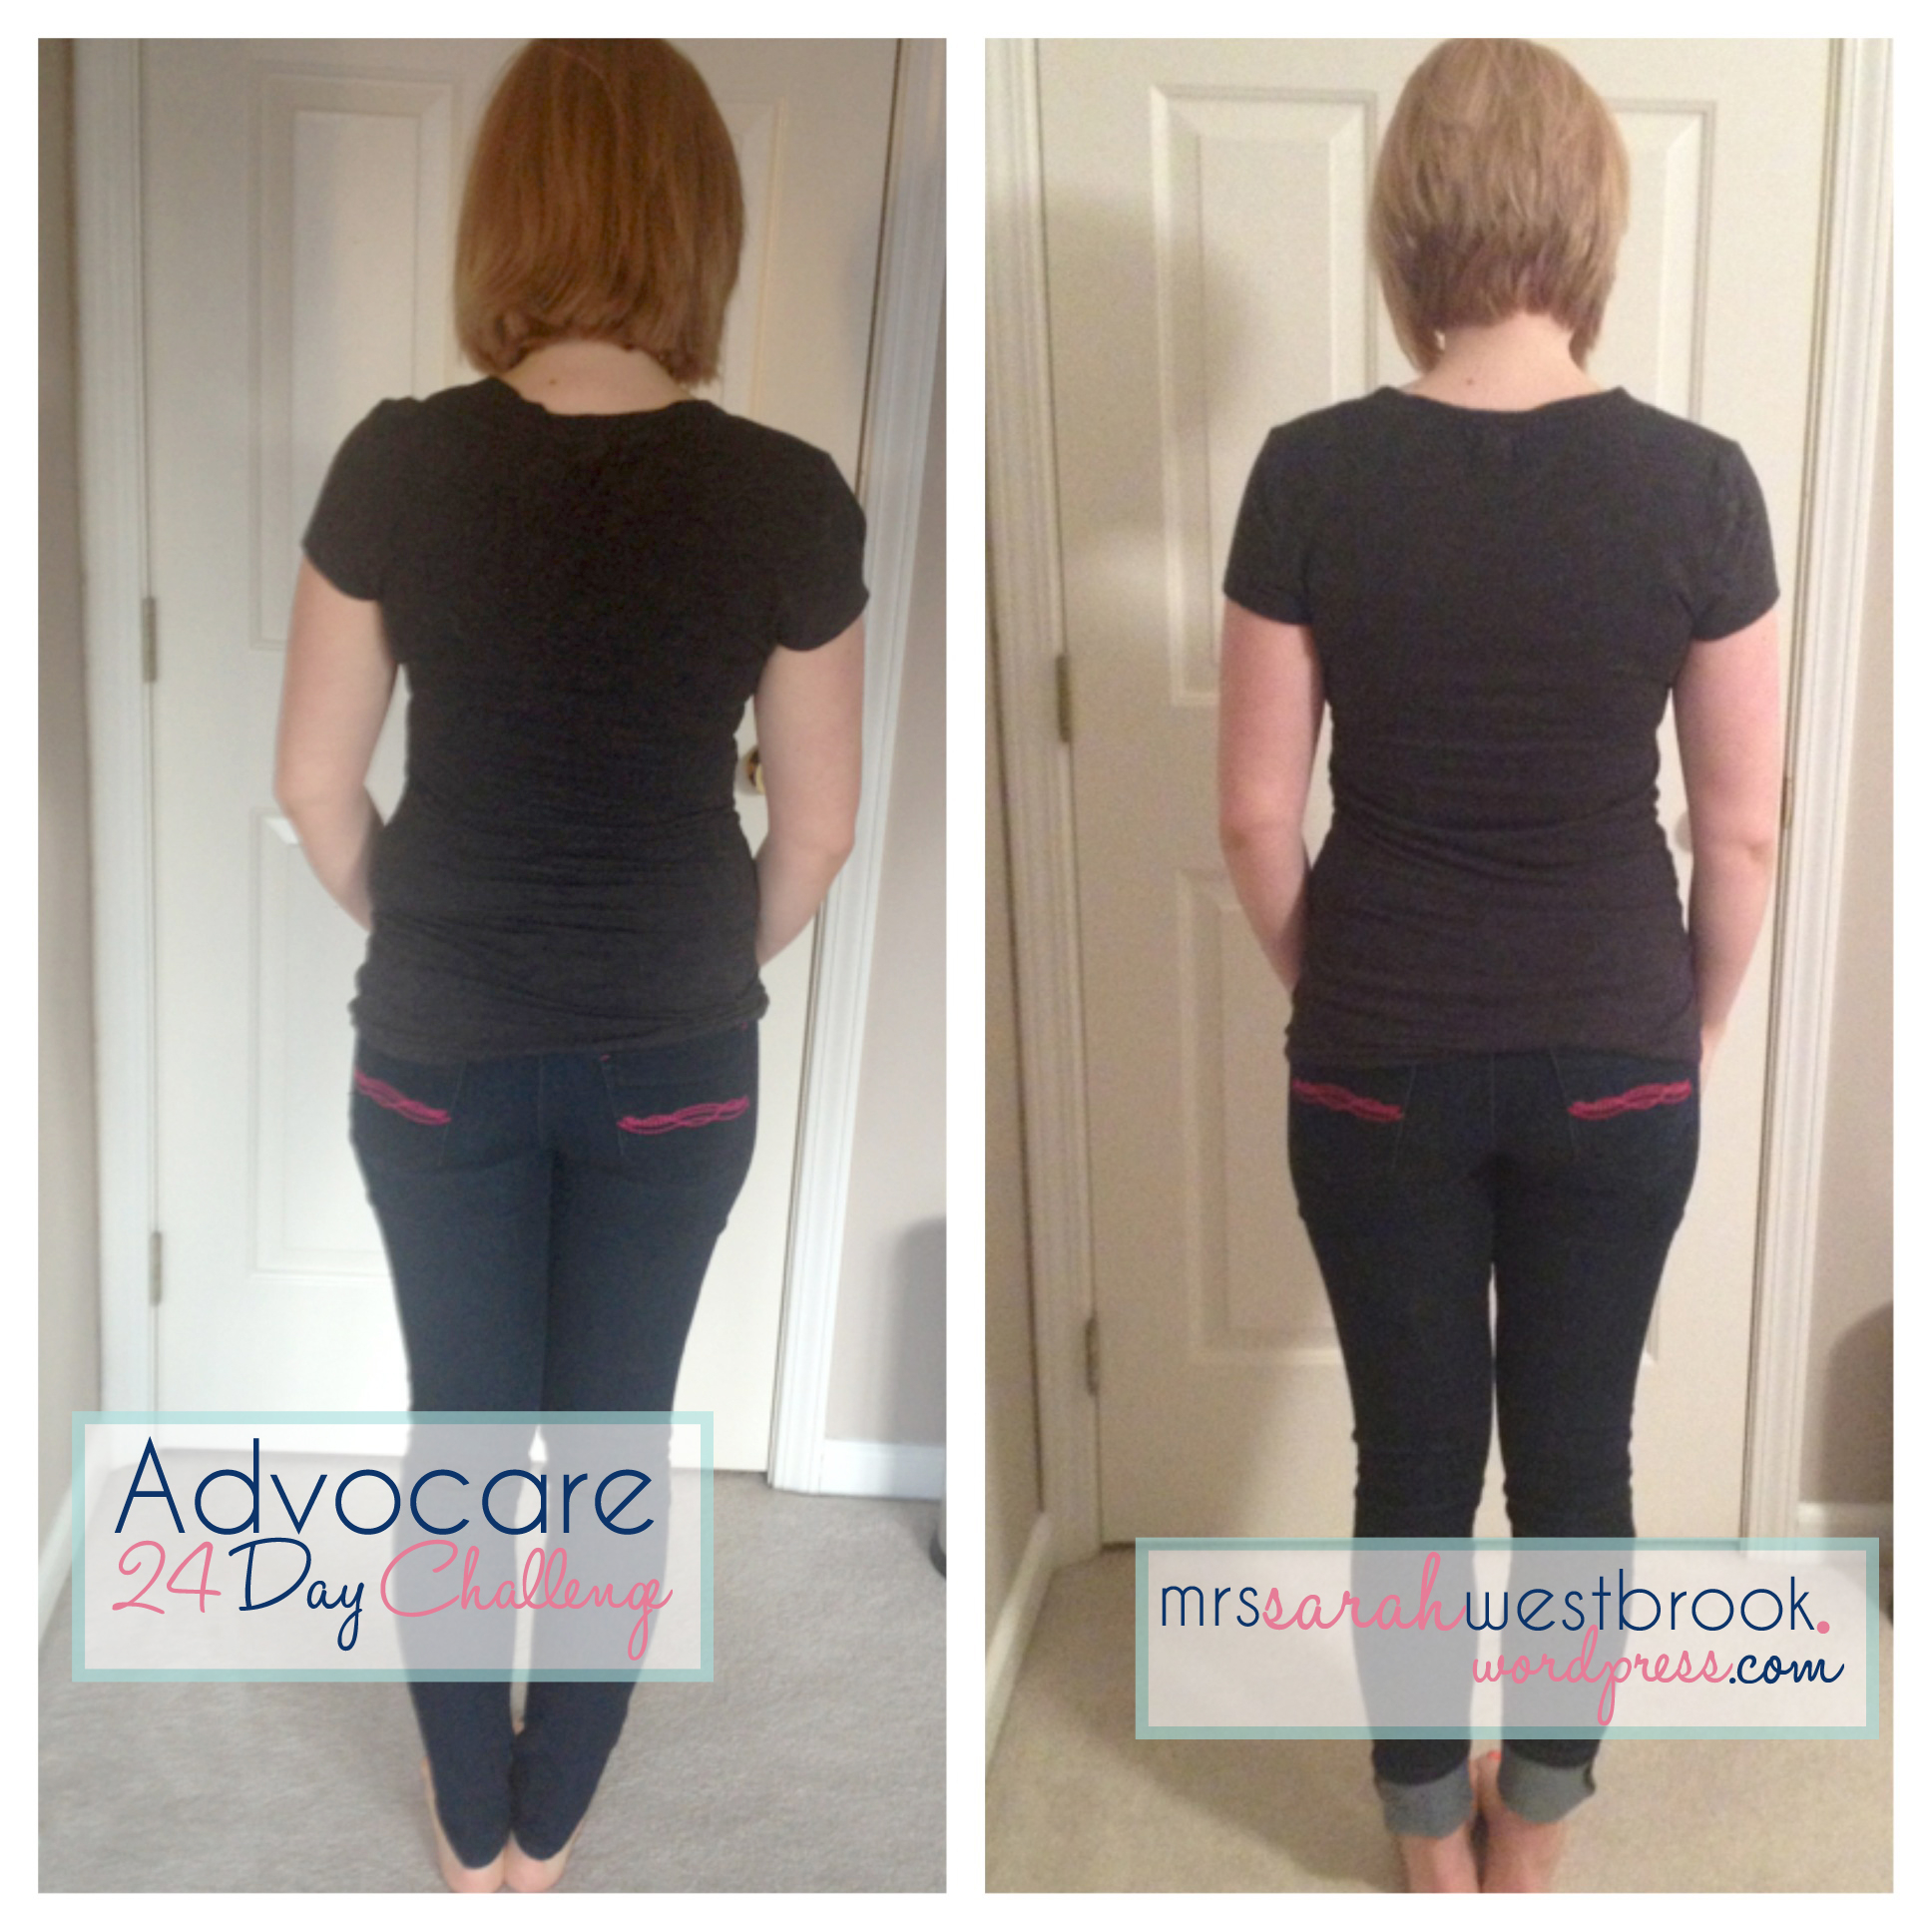 Losing The Baby Weight Part Ii   Planting Roots In Advocare 24 Day Challenge Editable